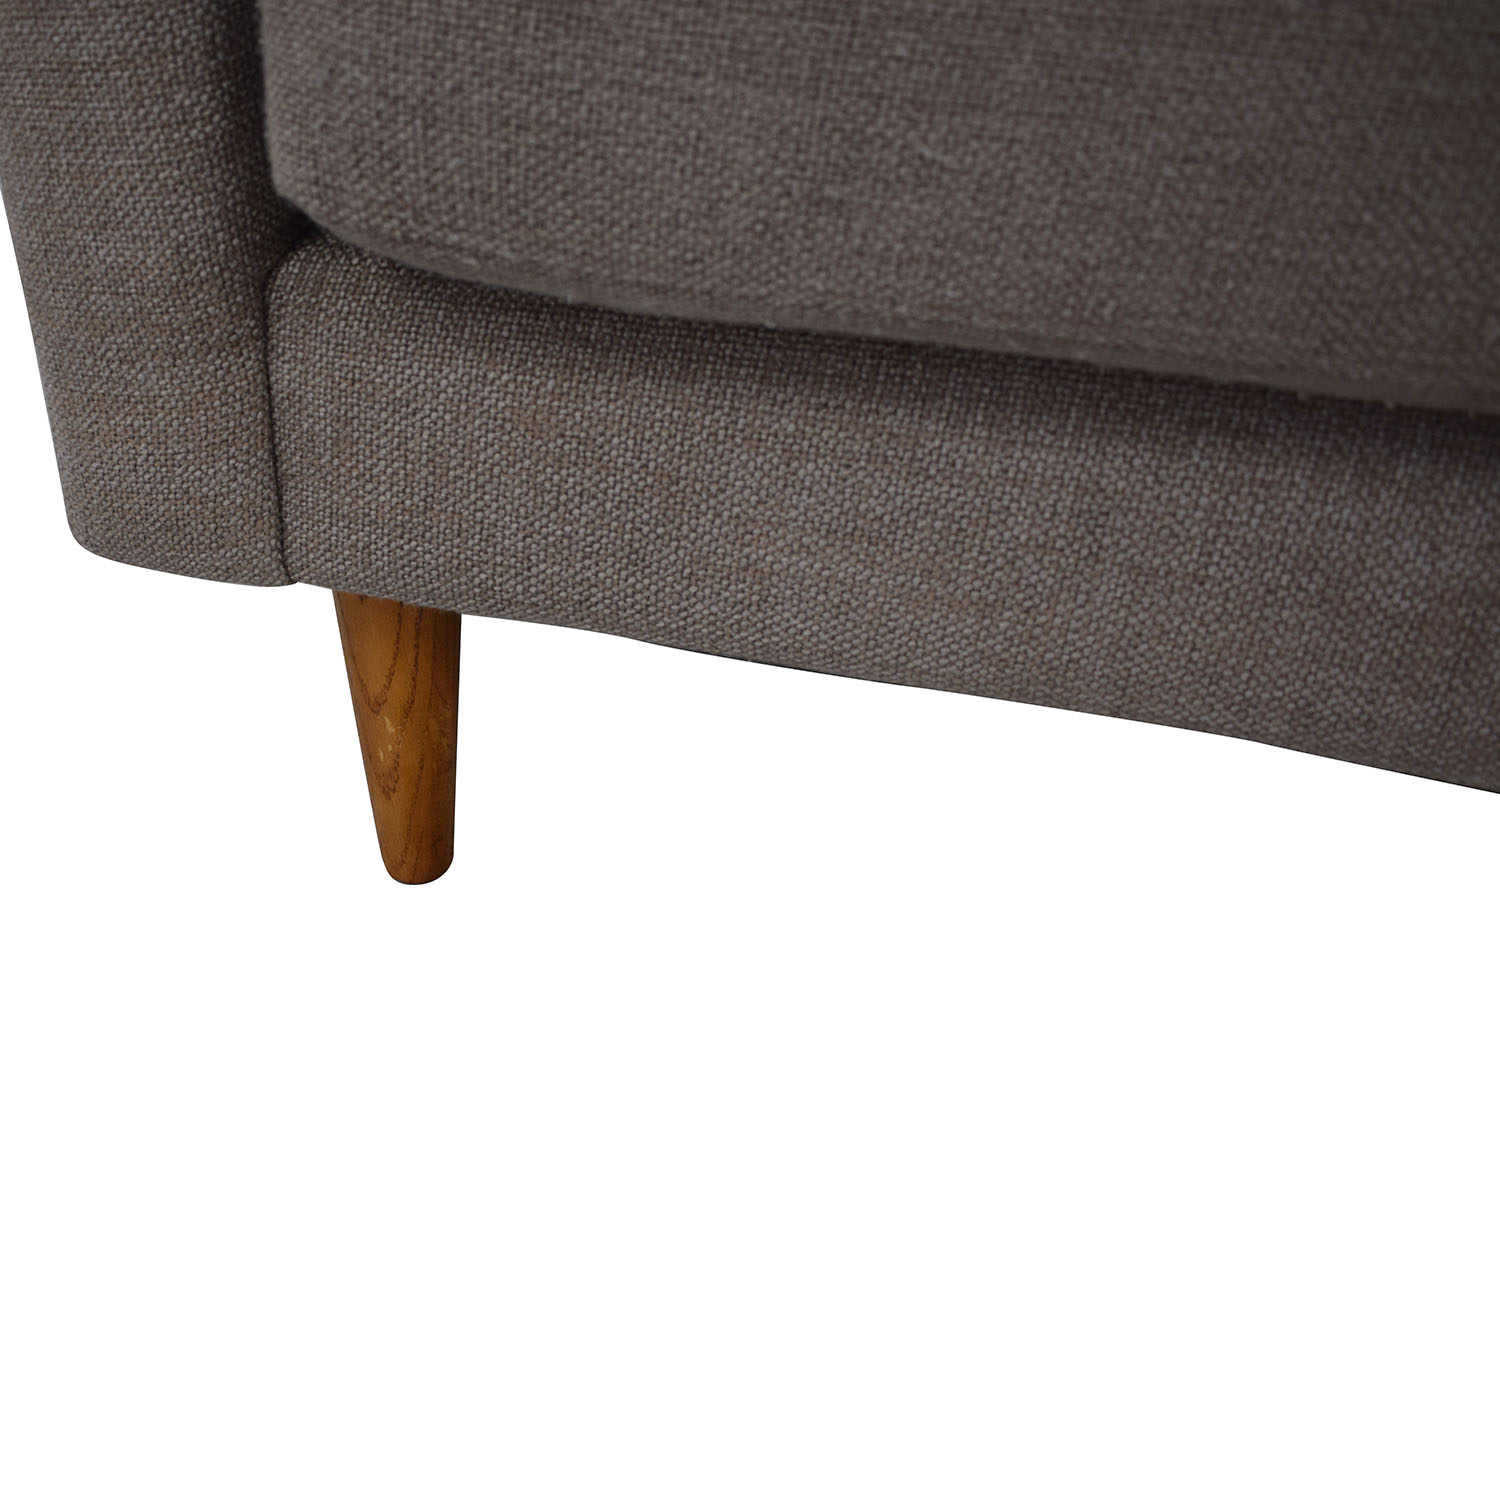 71% OFF - West Elm West Elm Crosby Mid Century Sectional Sofa with Chaise /  Sofas